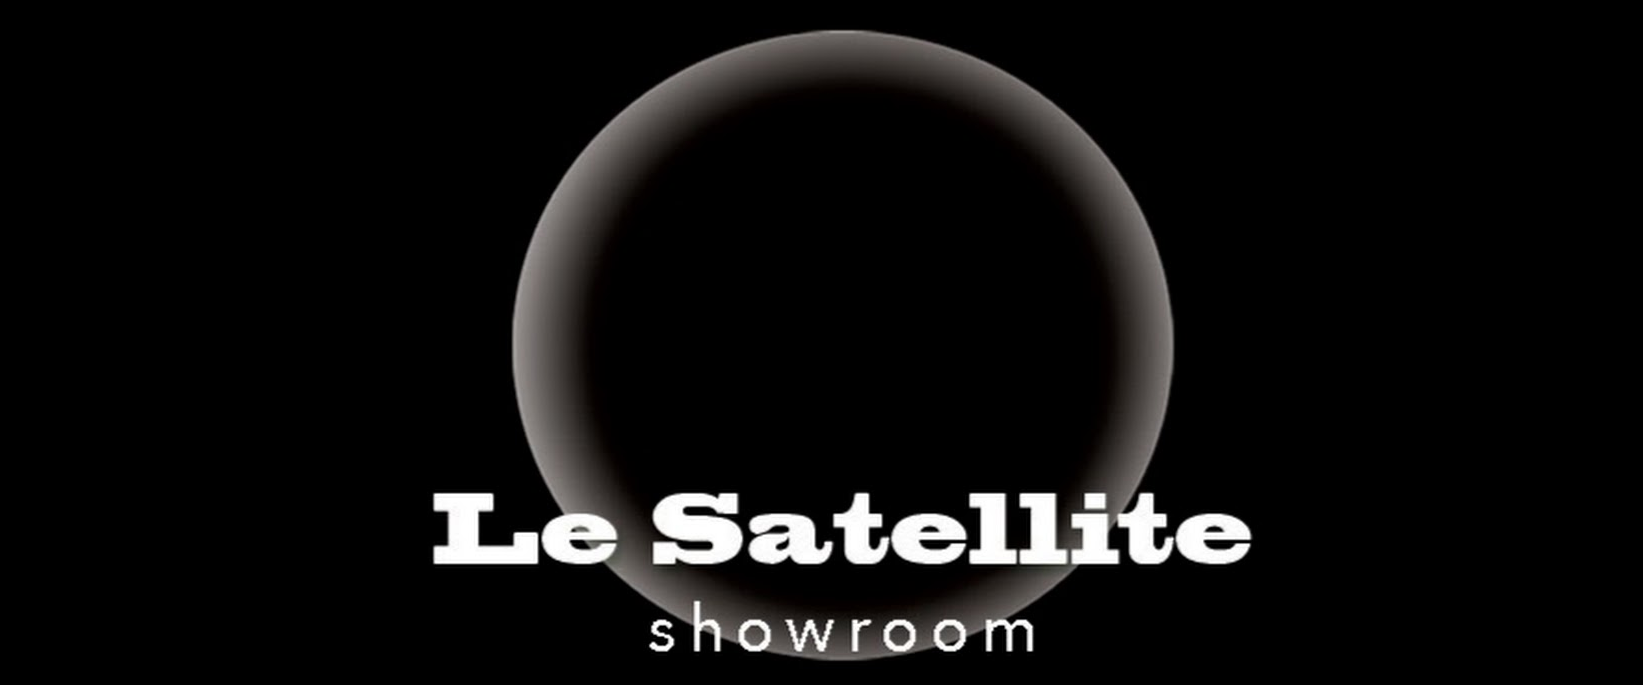 Showroom Le Satellite